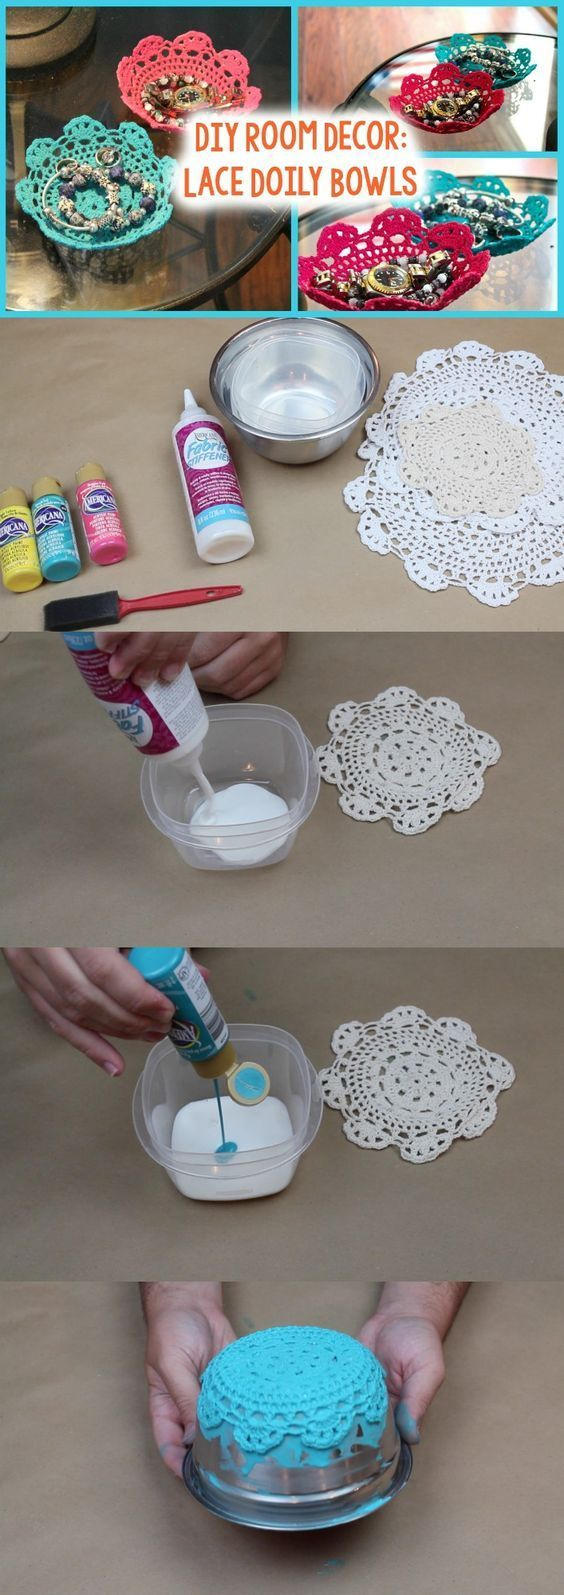 DIY Lace Doily Bowl - Perfect DIY to hold jewlery from Tanner Bell::